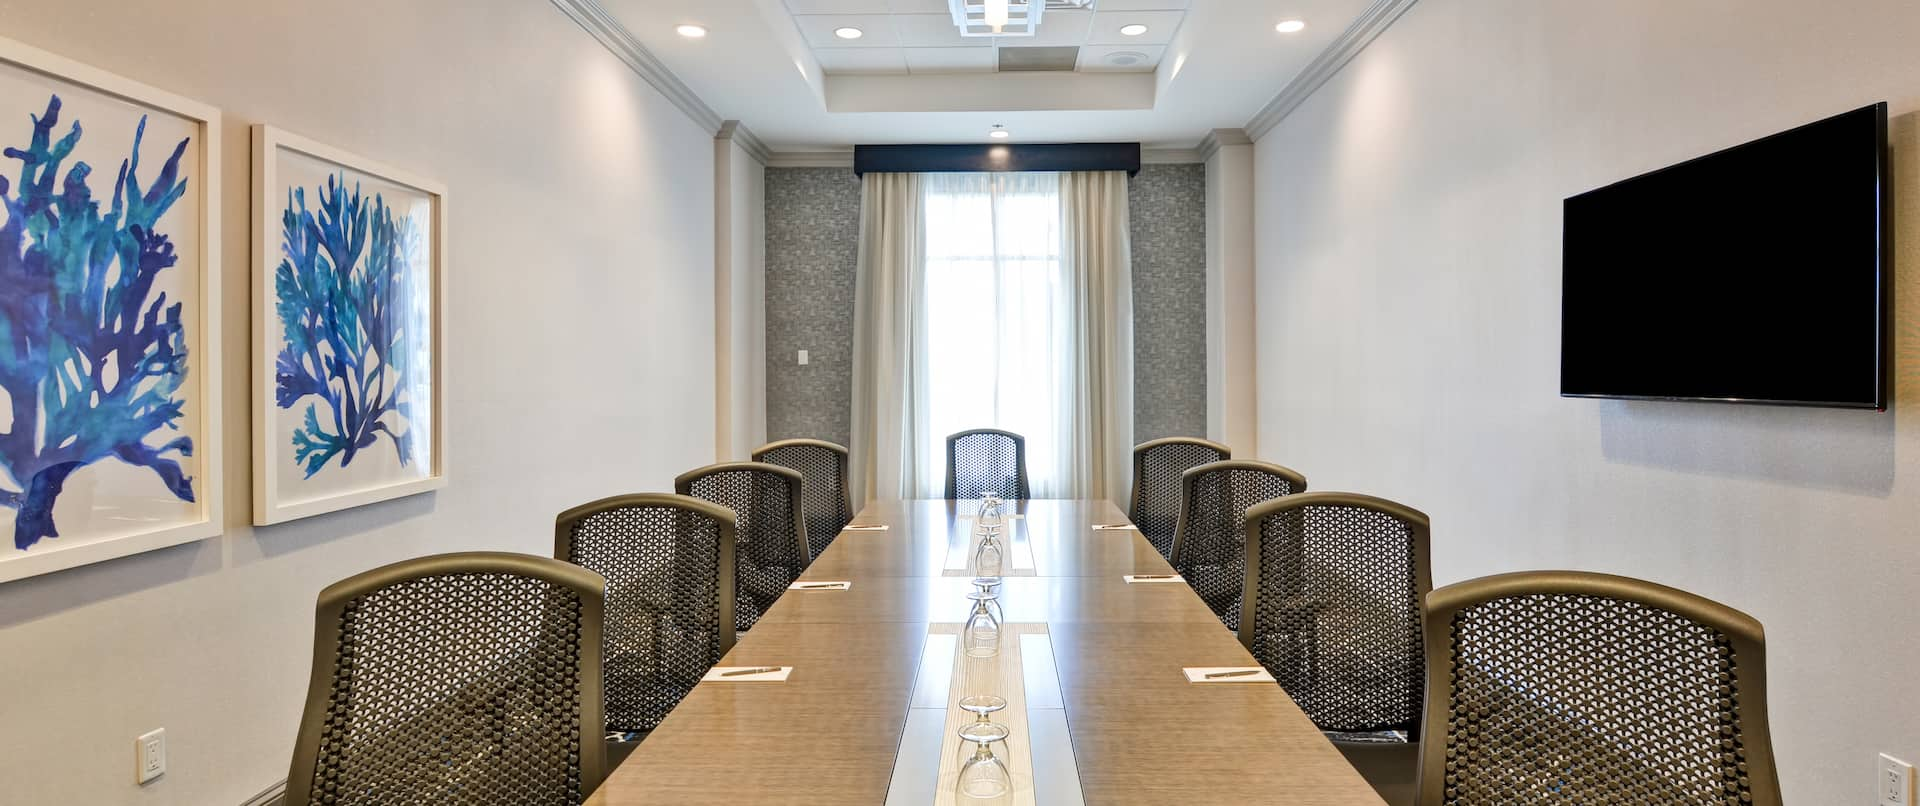 Boardroom with Conference Table and Wall Mounted Television